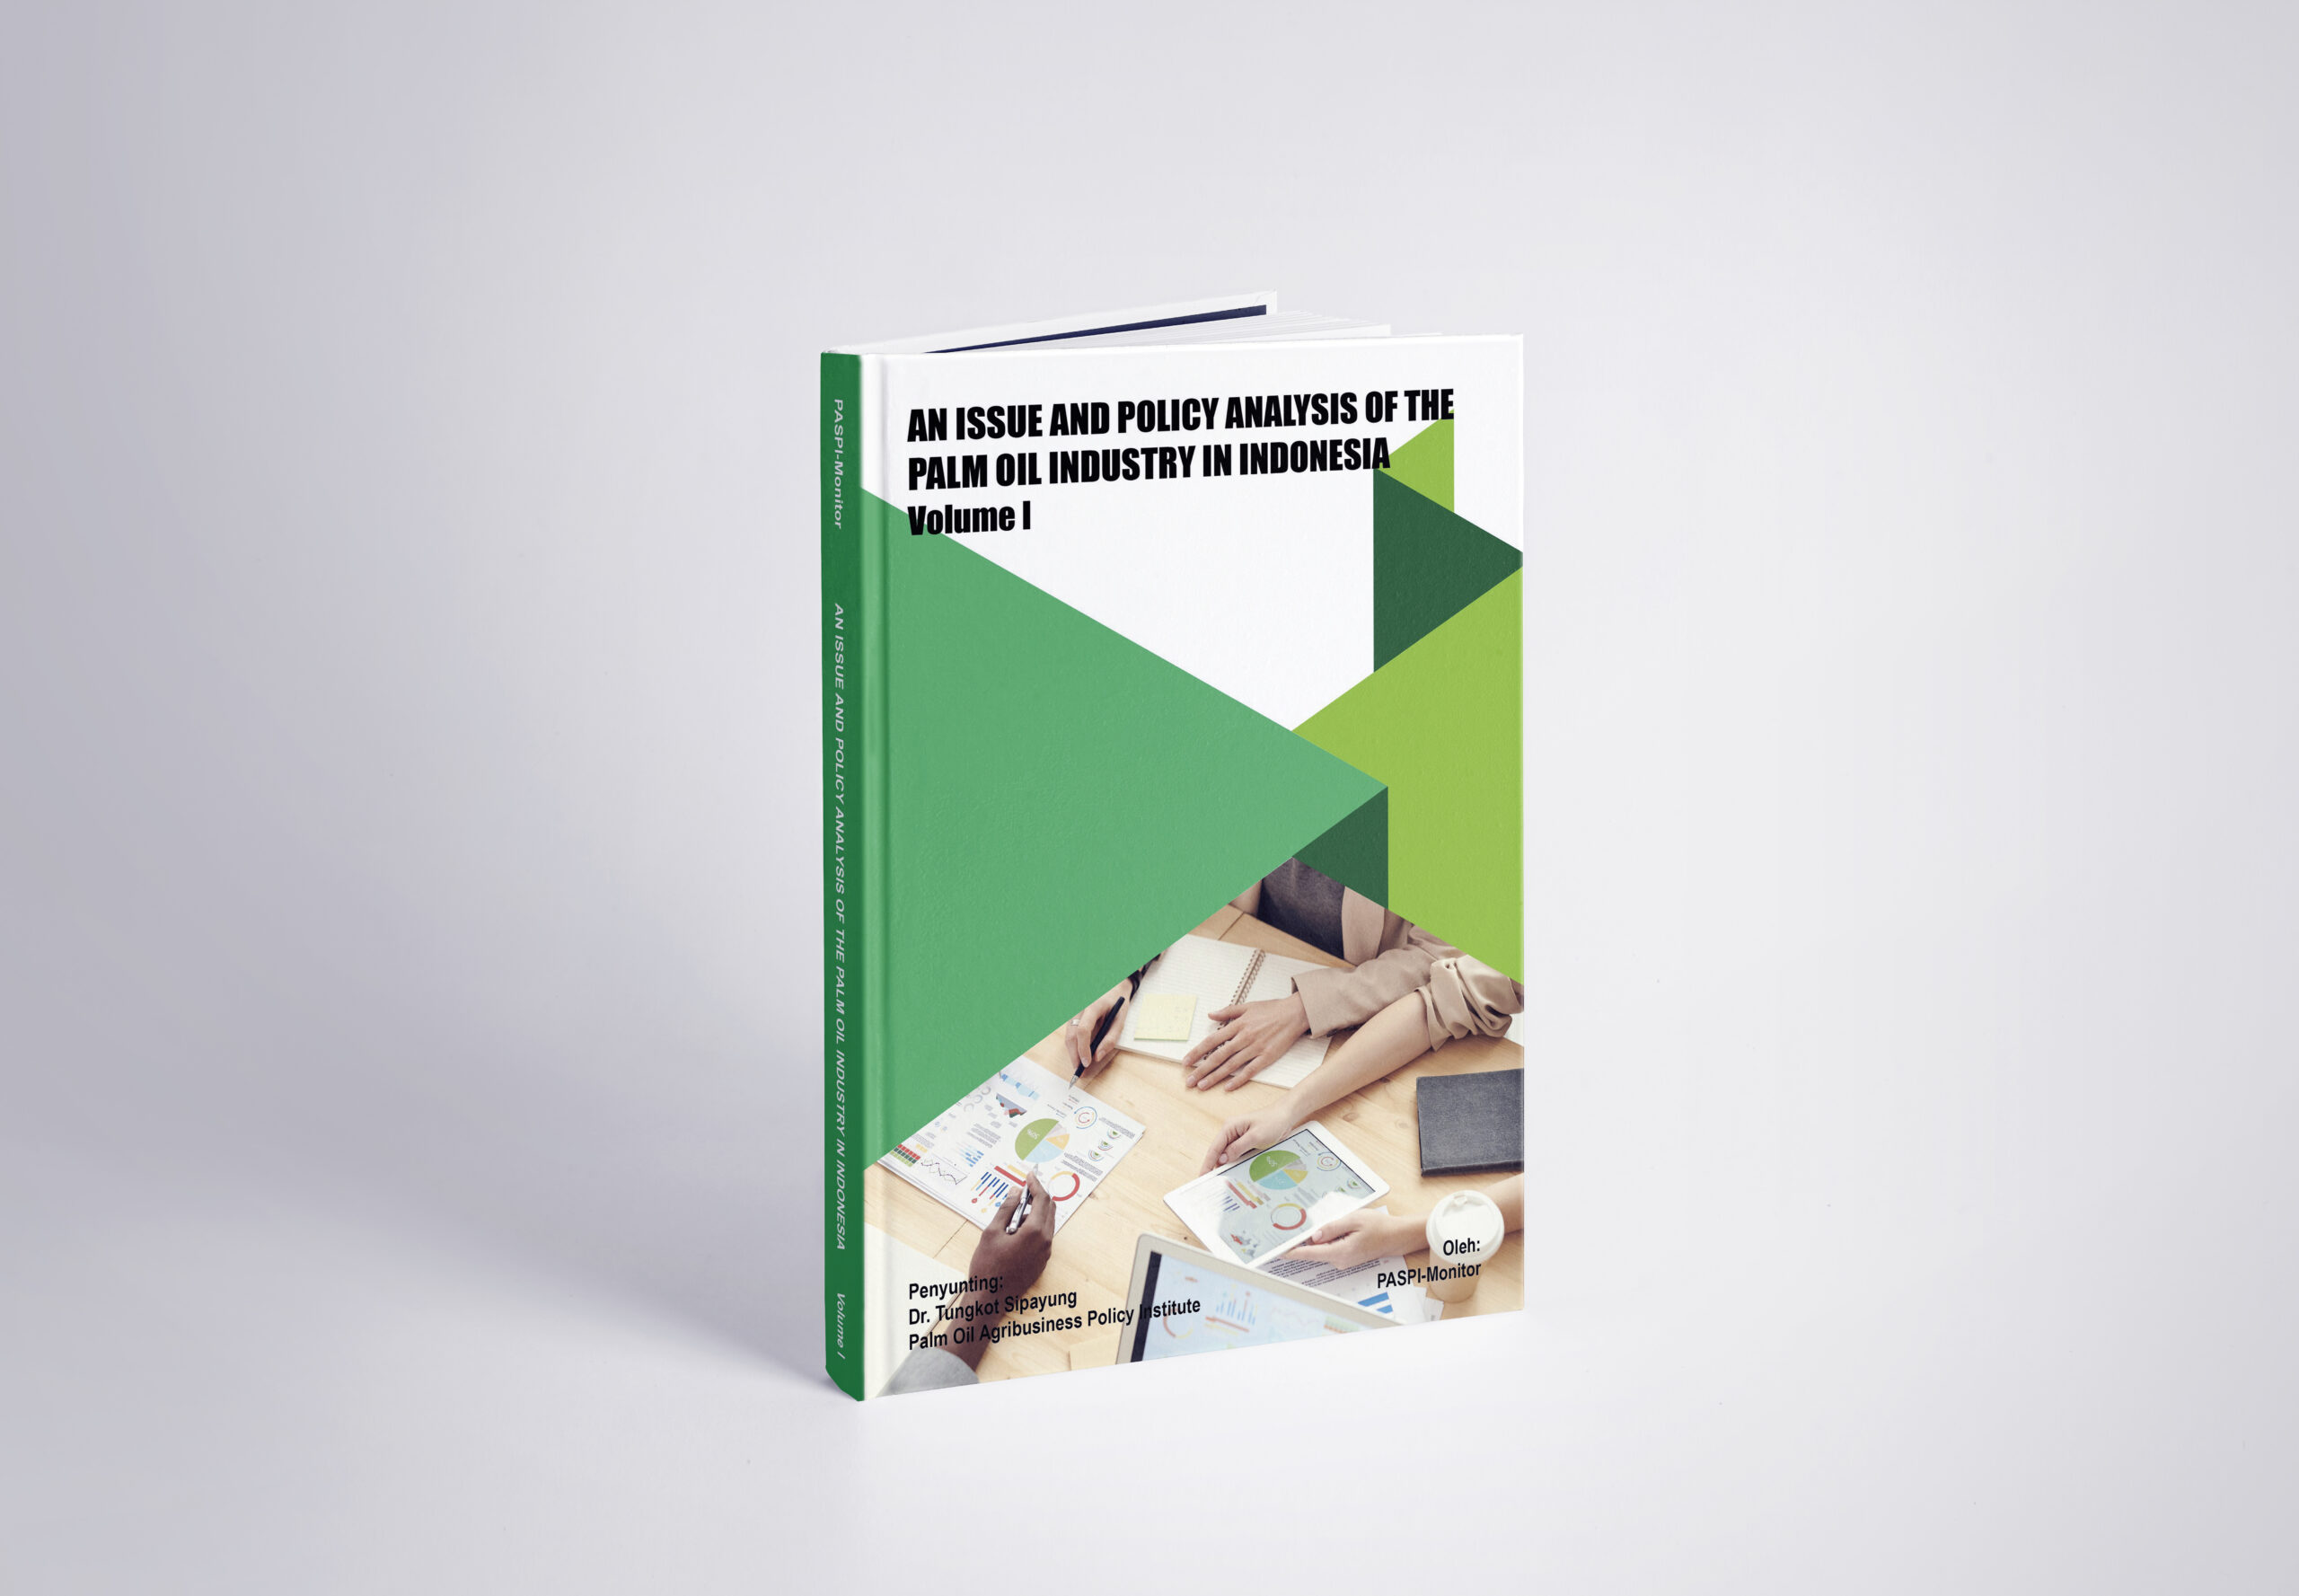 26. Mock Up An Issue And Policy Analysis Of The Palm Oil Industry In Indonesia Vol I scaled